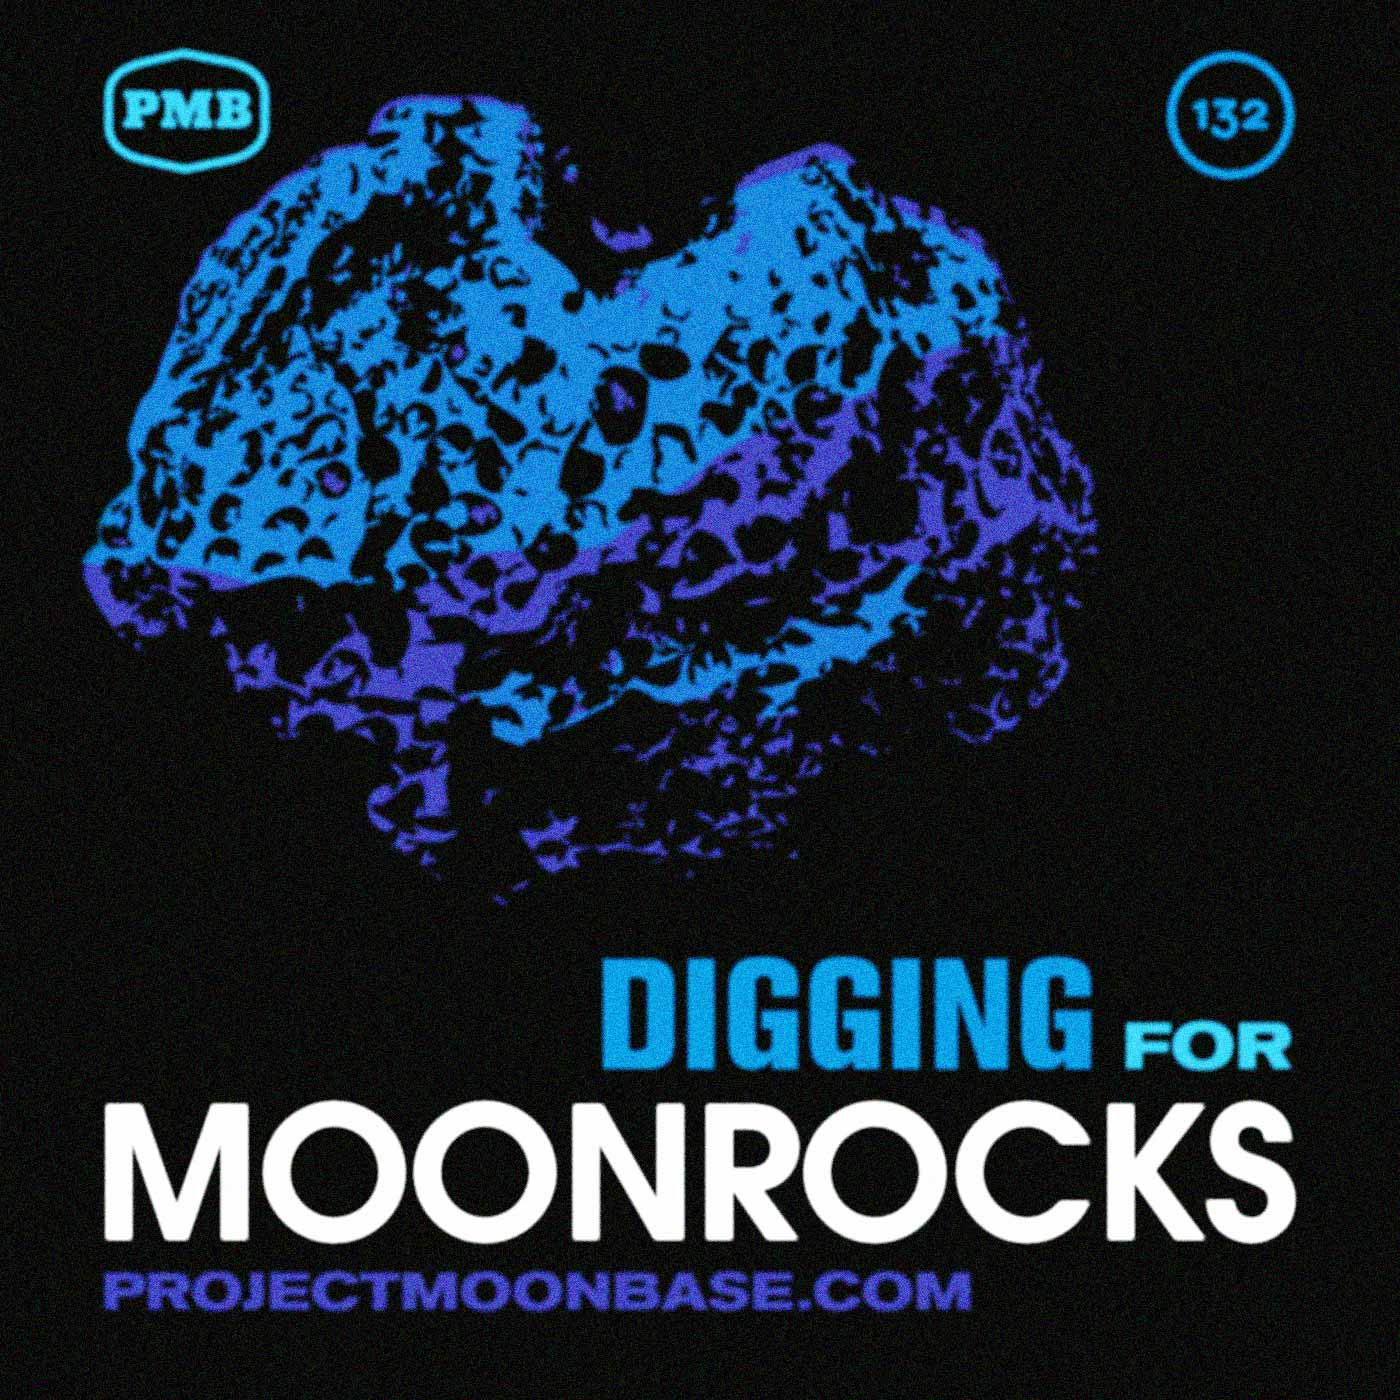 PMB132 Digging for Moonrocks